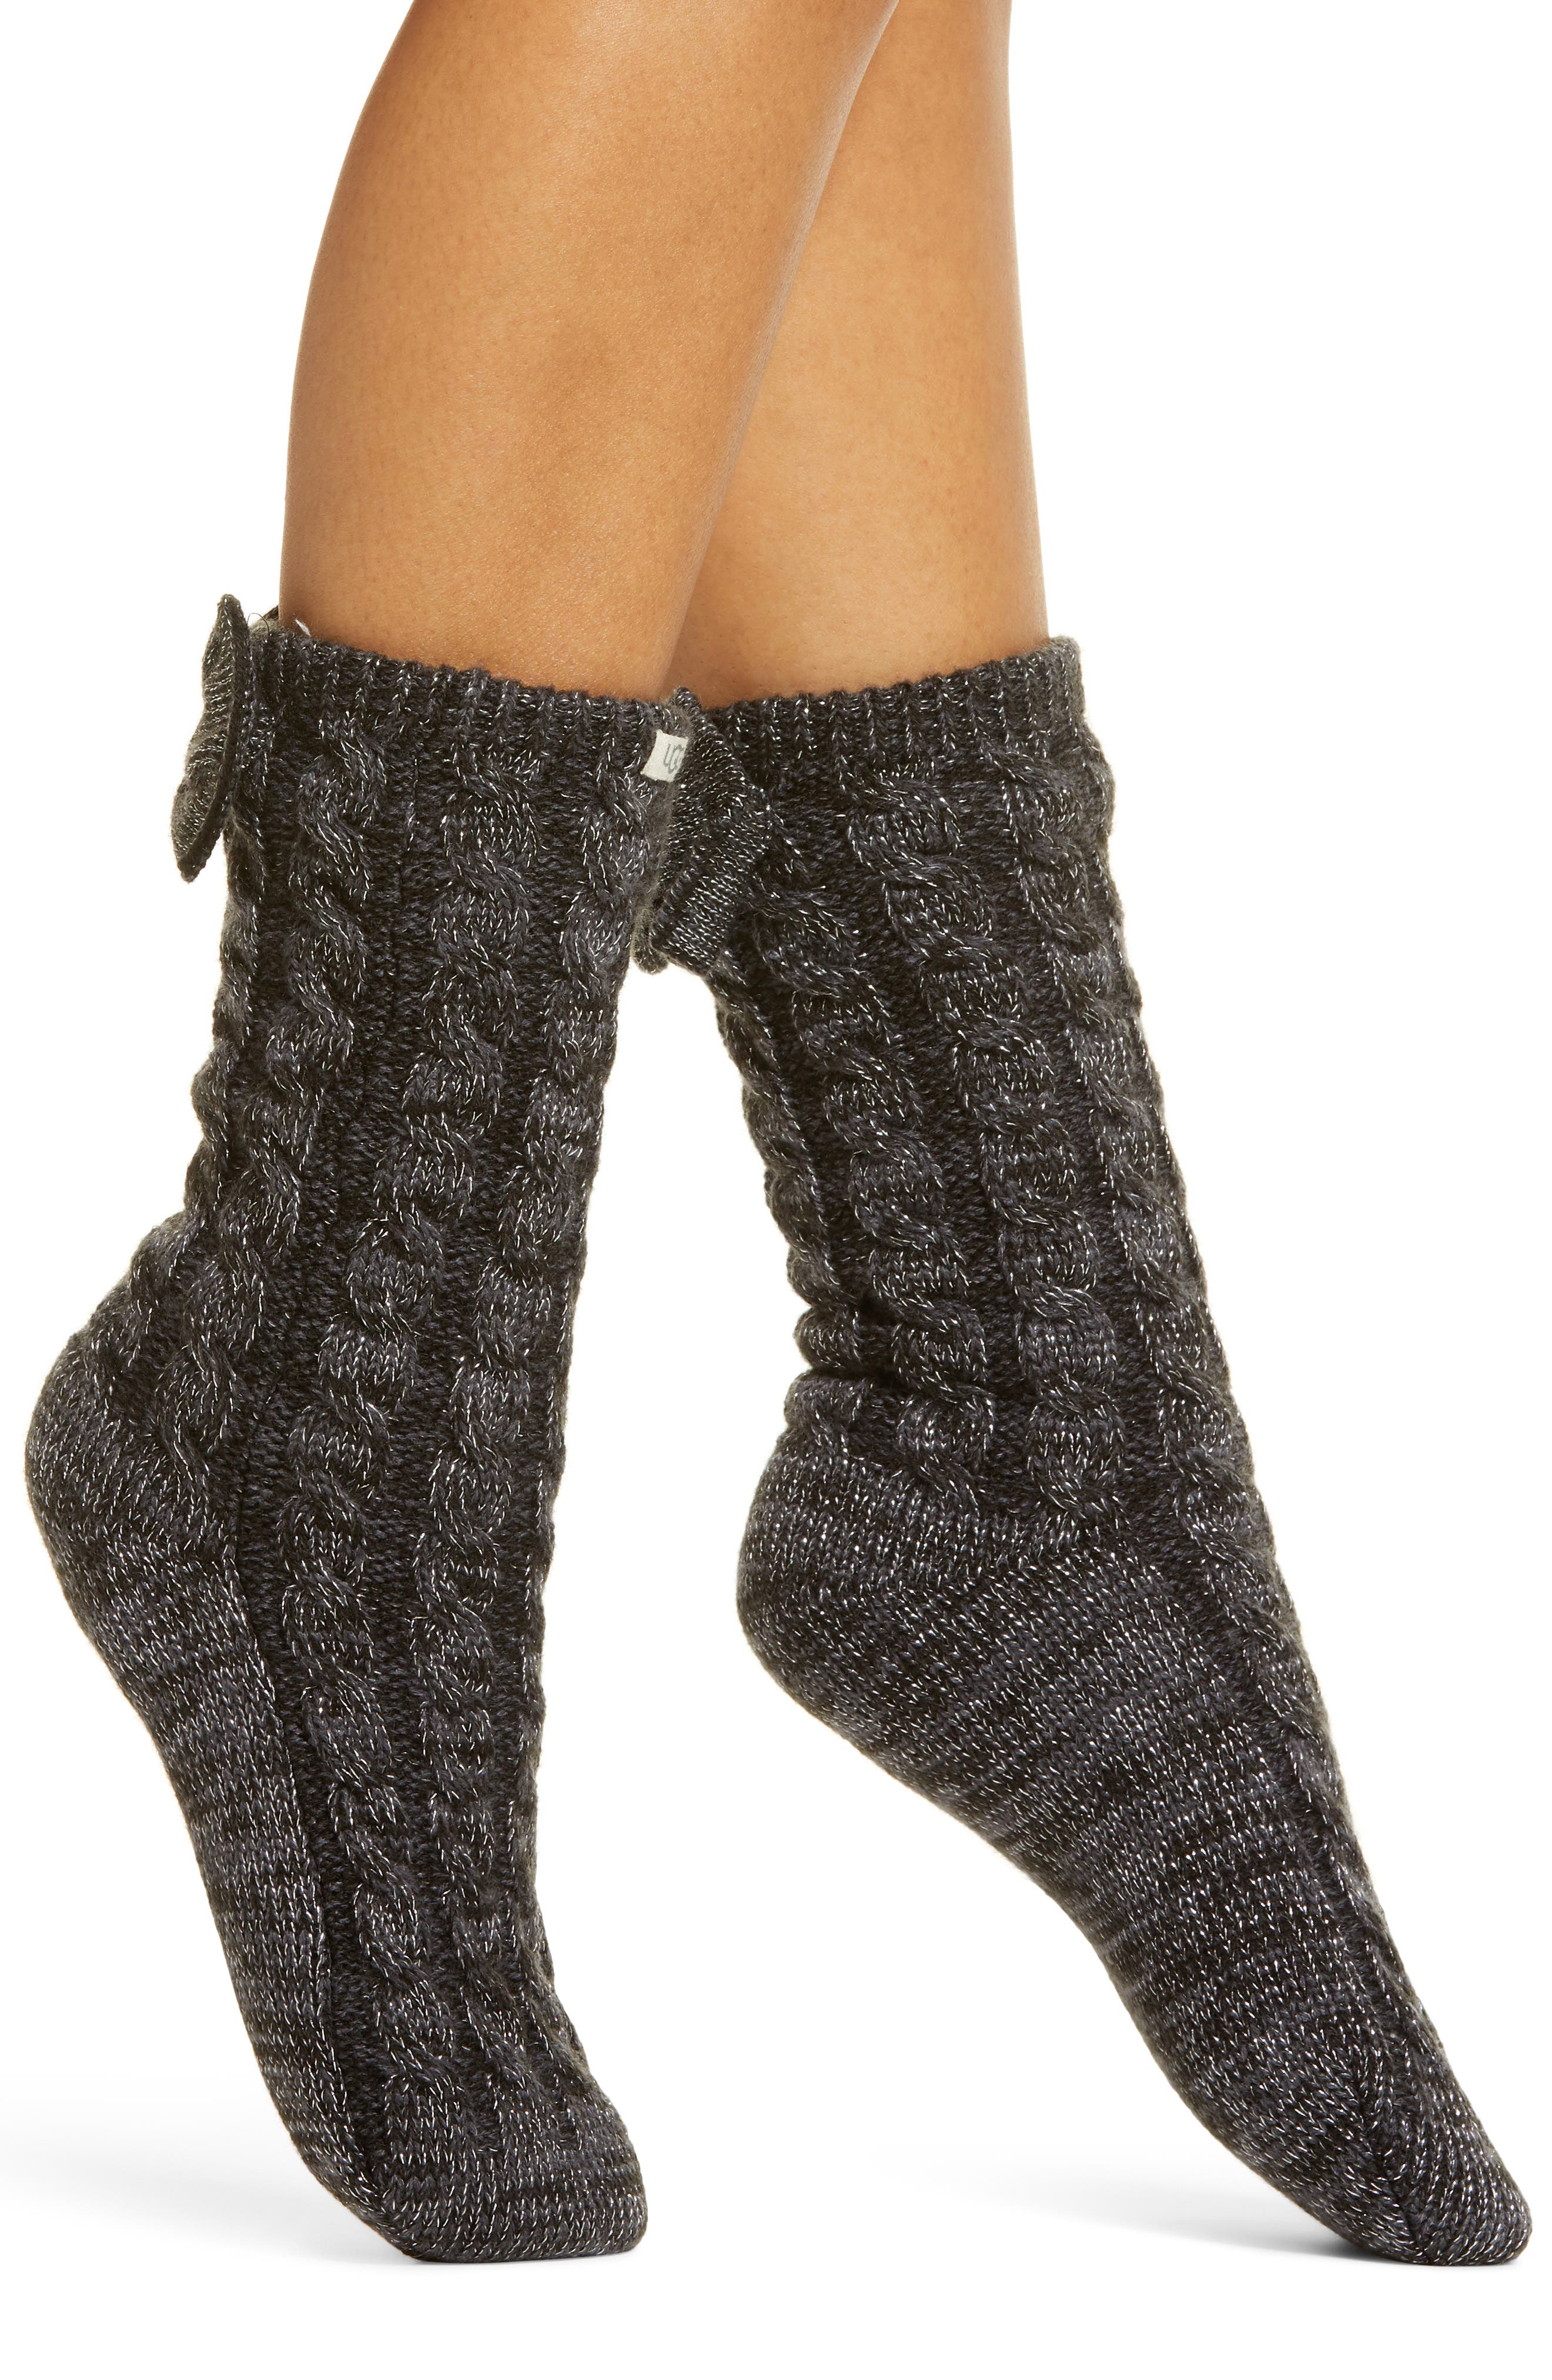 Chunky cables texture the exterior of these cozy crew socks enhanced by bow-set cuffs and plush fleece lining. Style Name: UGG Laila Bow Fleece Lined Socks. Style Number: 6060108 1. Available in stores.